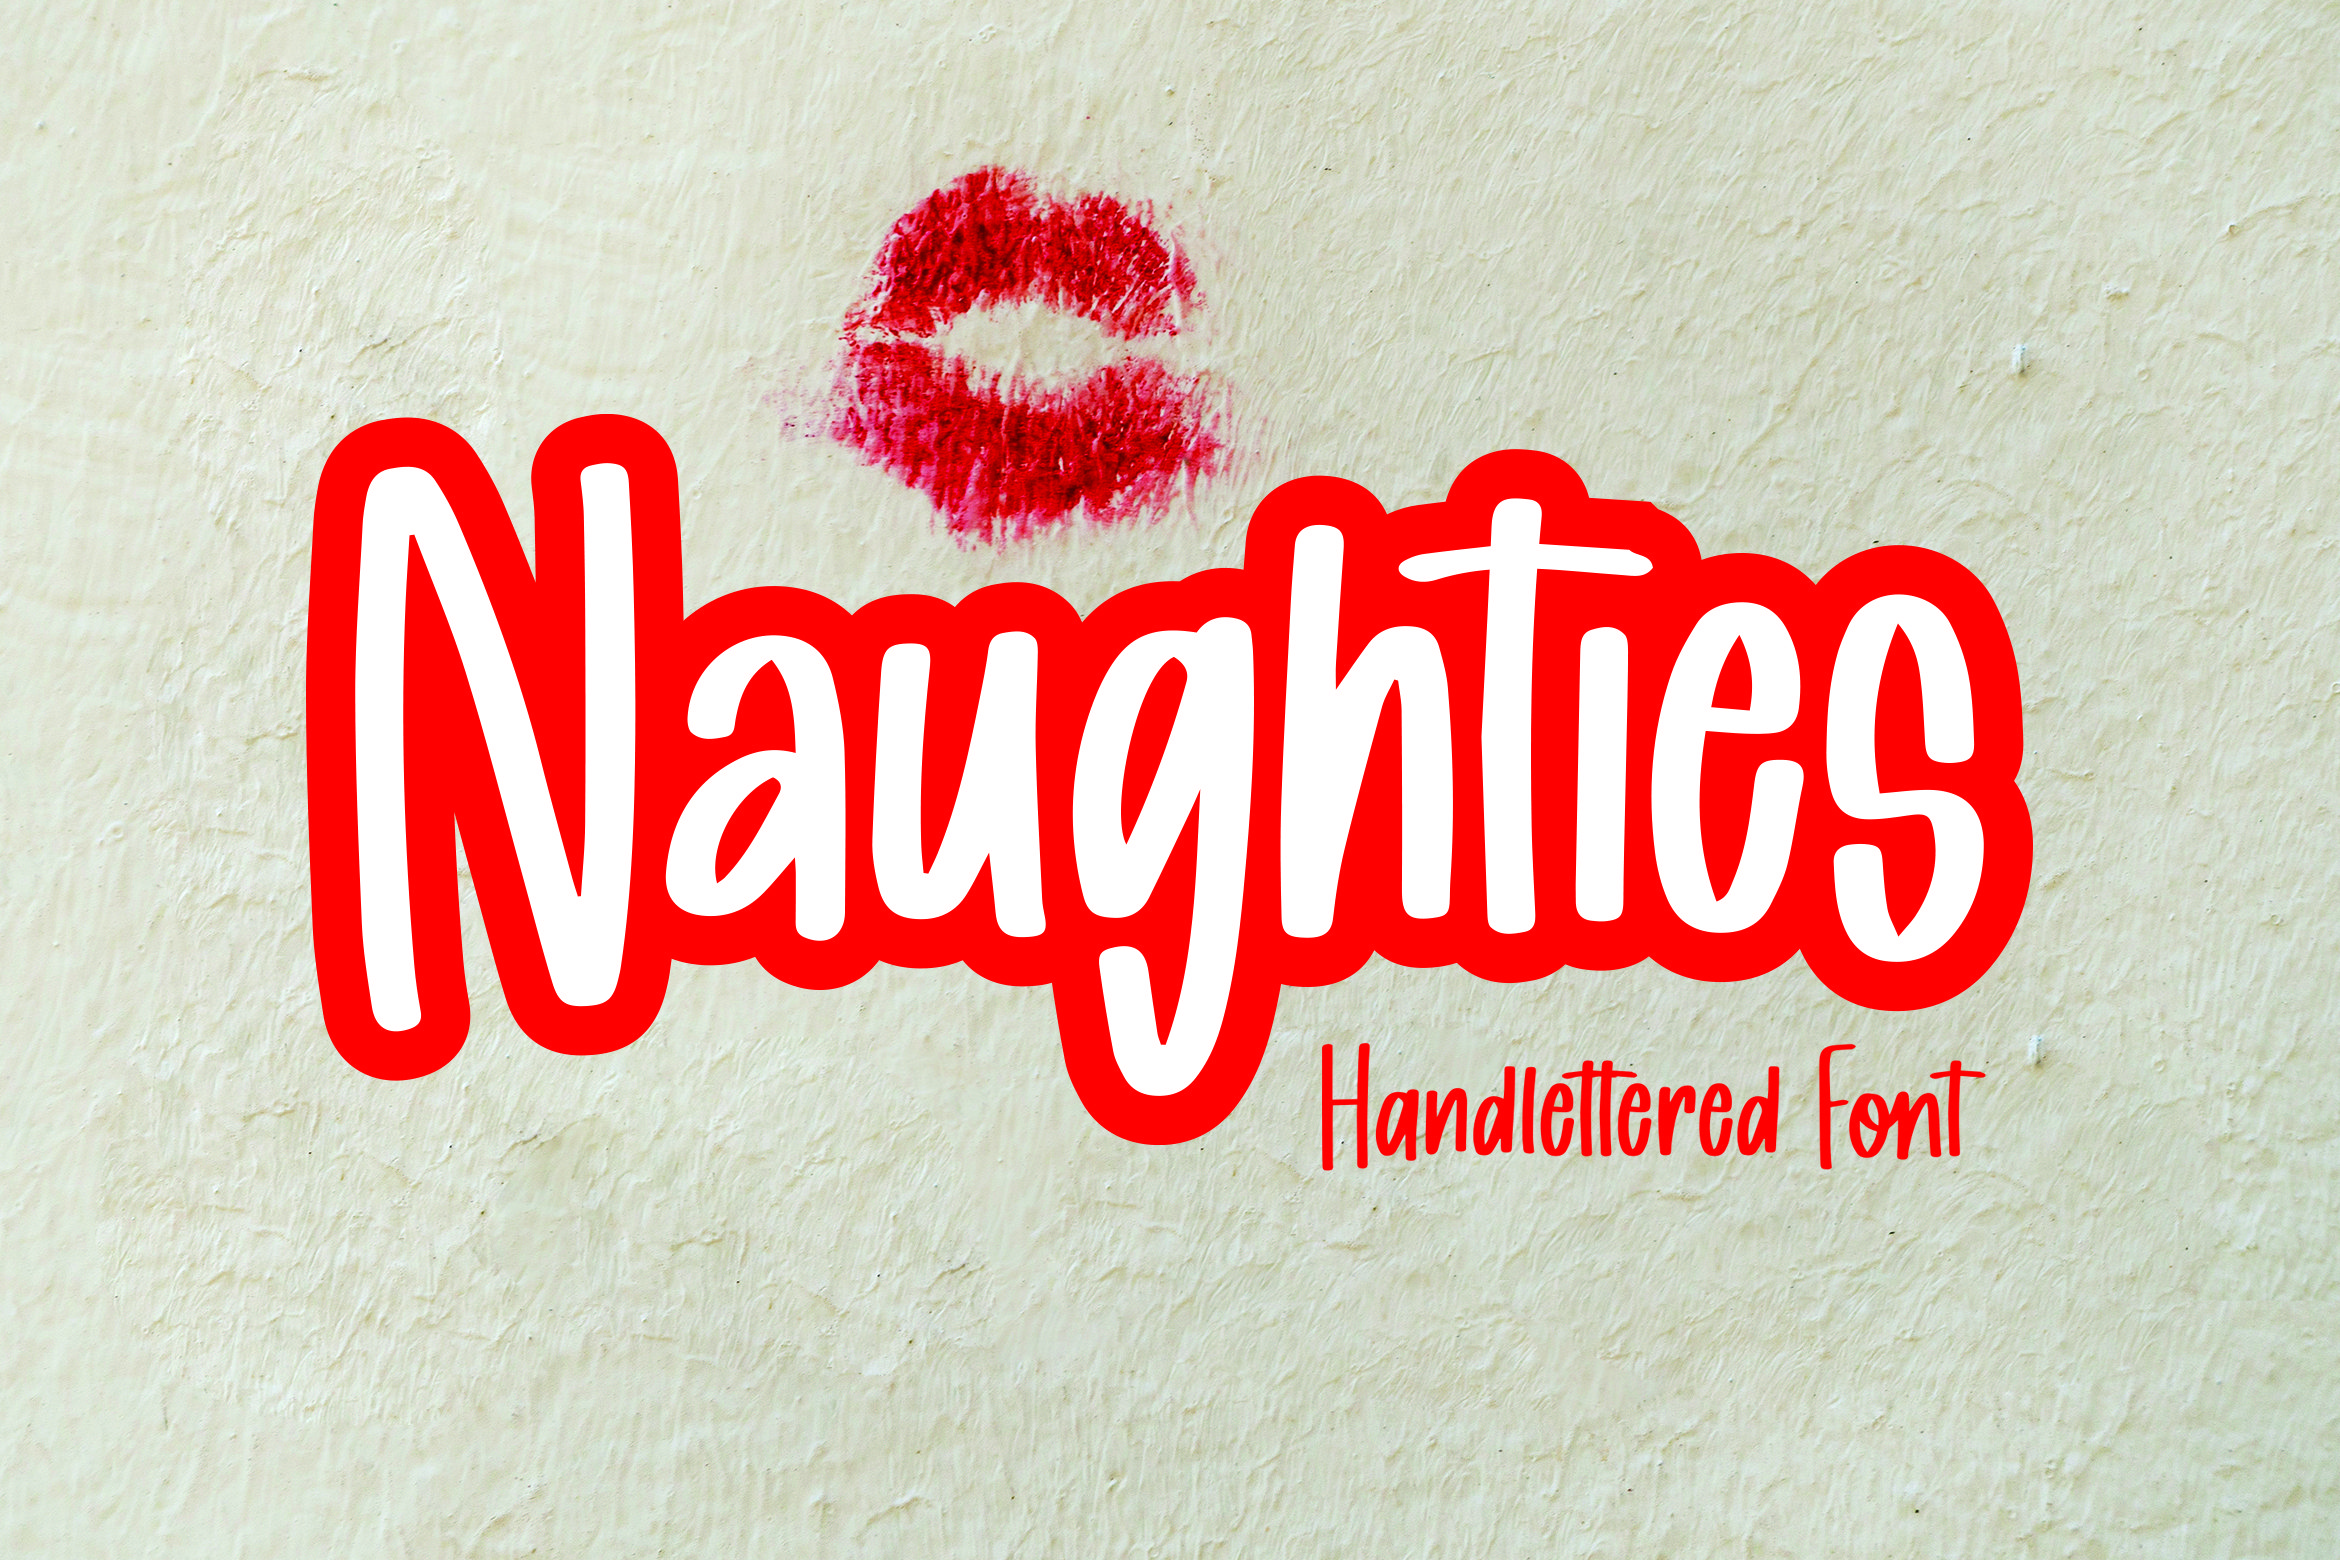 Naughties - Handlettered Font example image 1